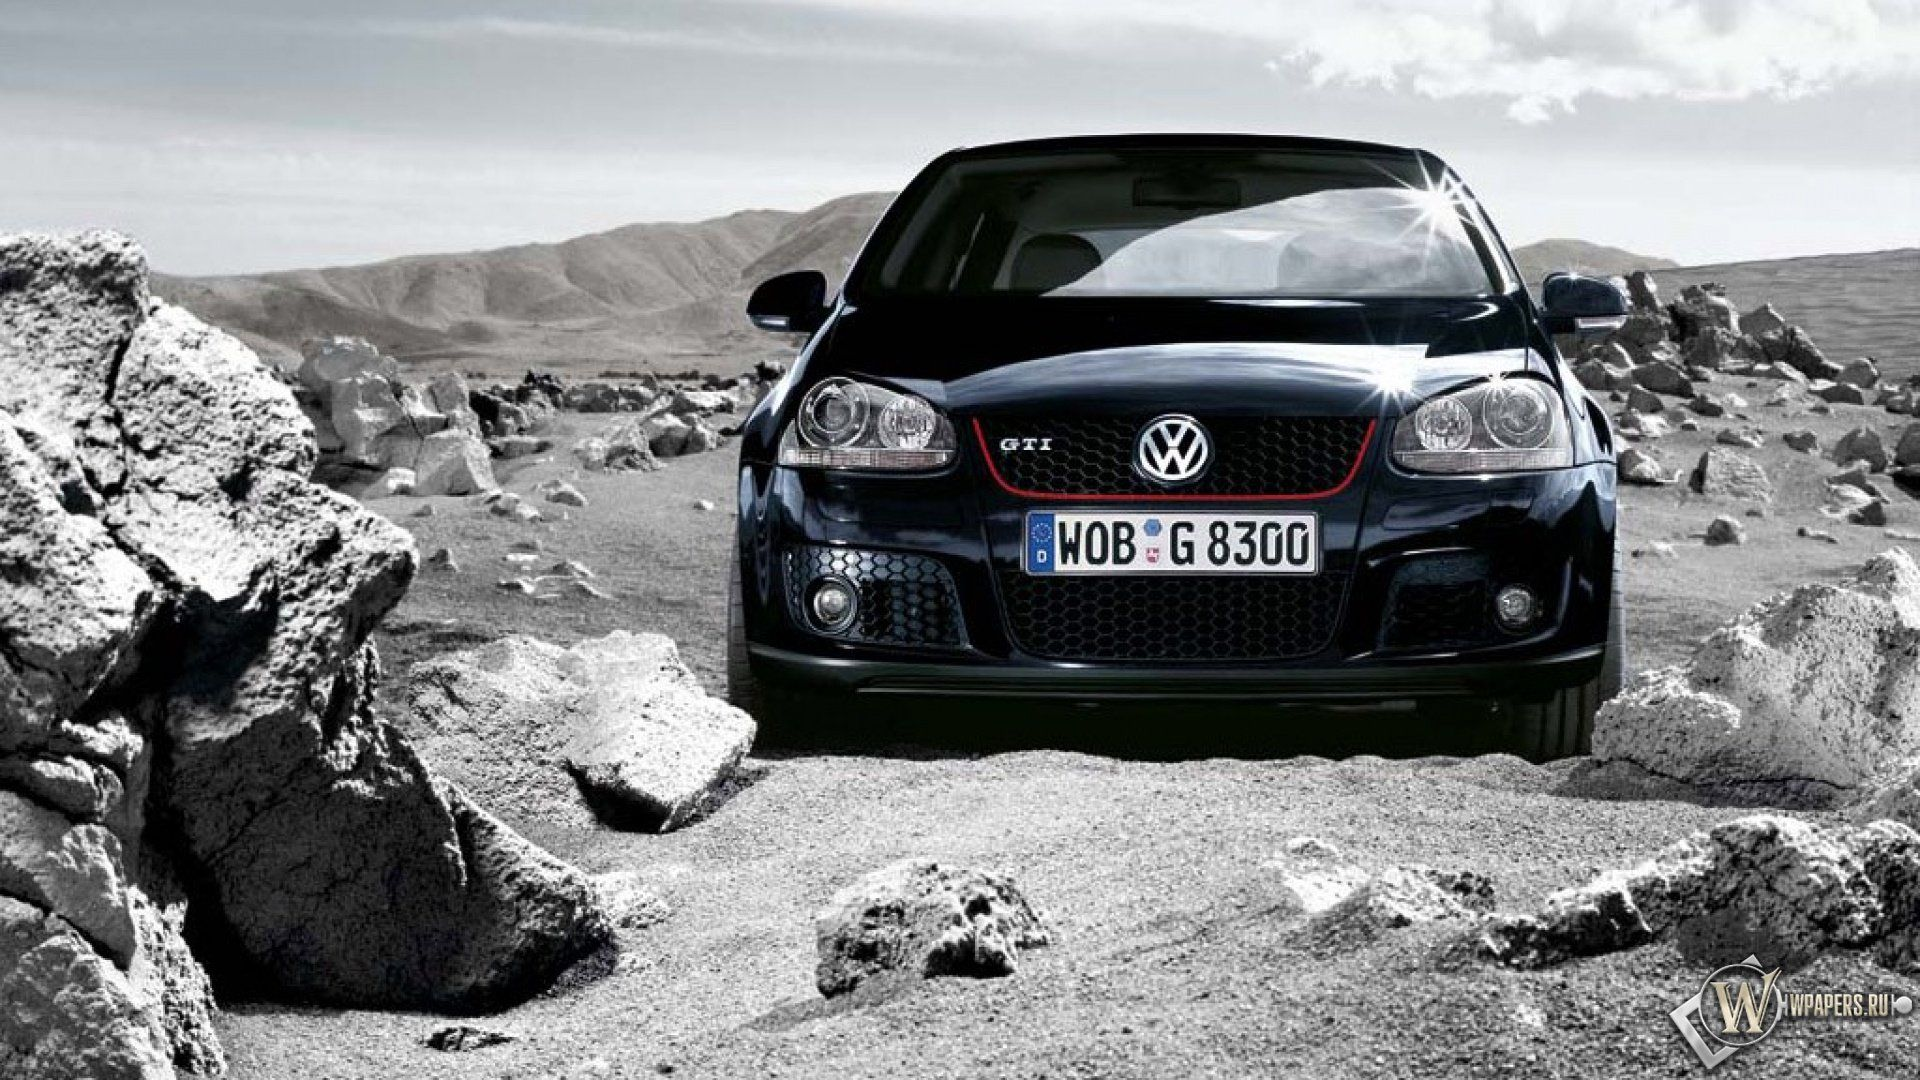 Cars Wallpaper VW Golf Full HD For Desktop Background Resolution